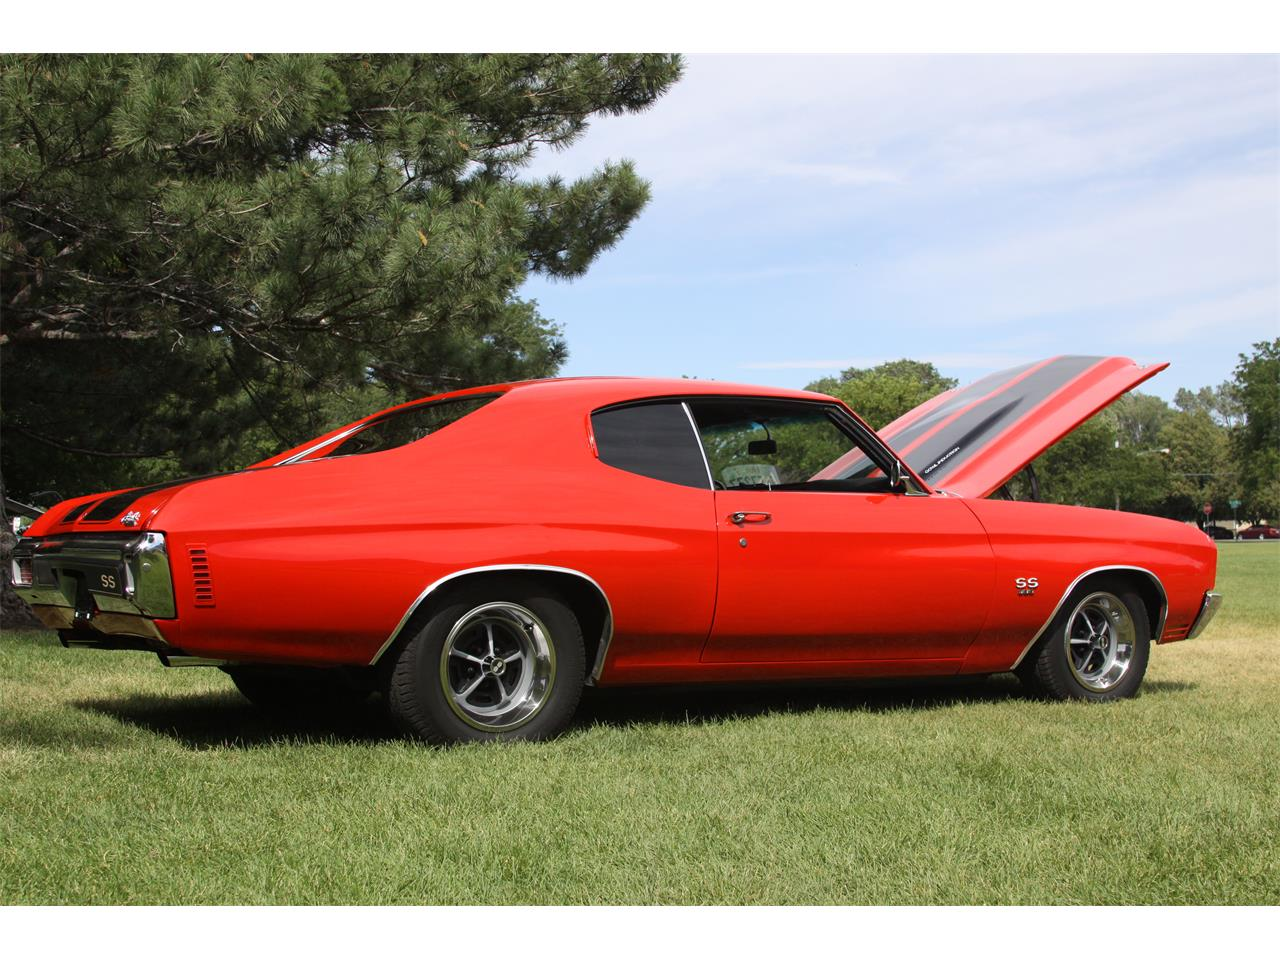 For Sale: 1970 Chevrolet Chevelle SS in Layton, Utah